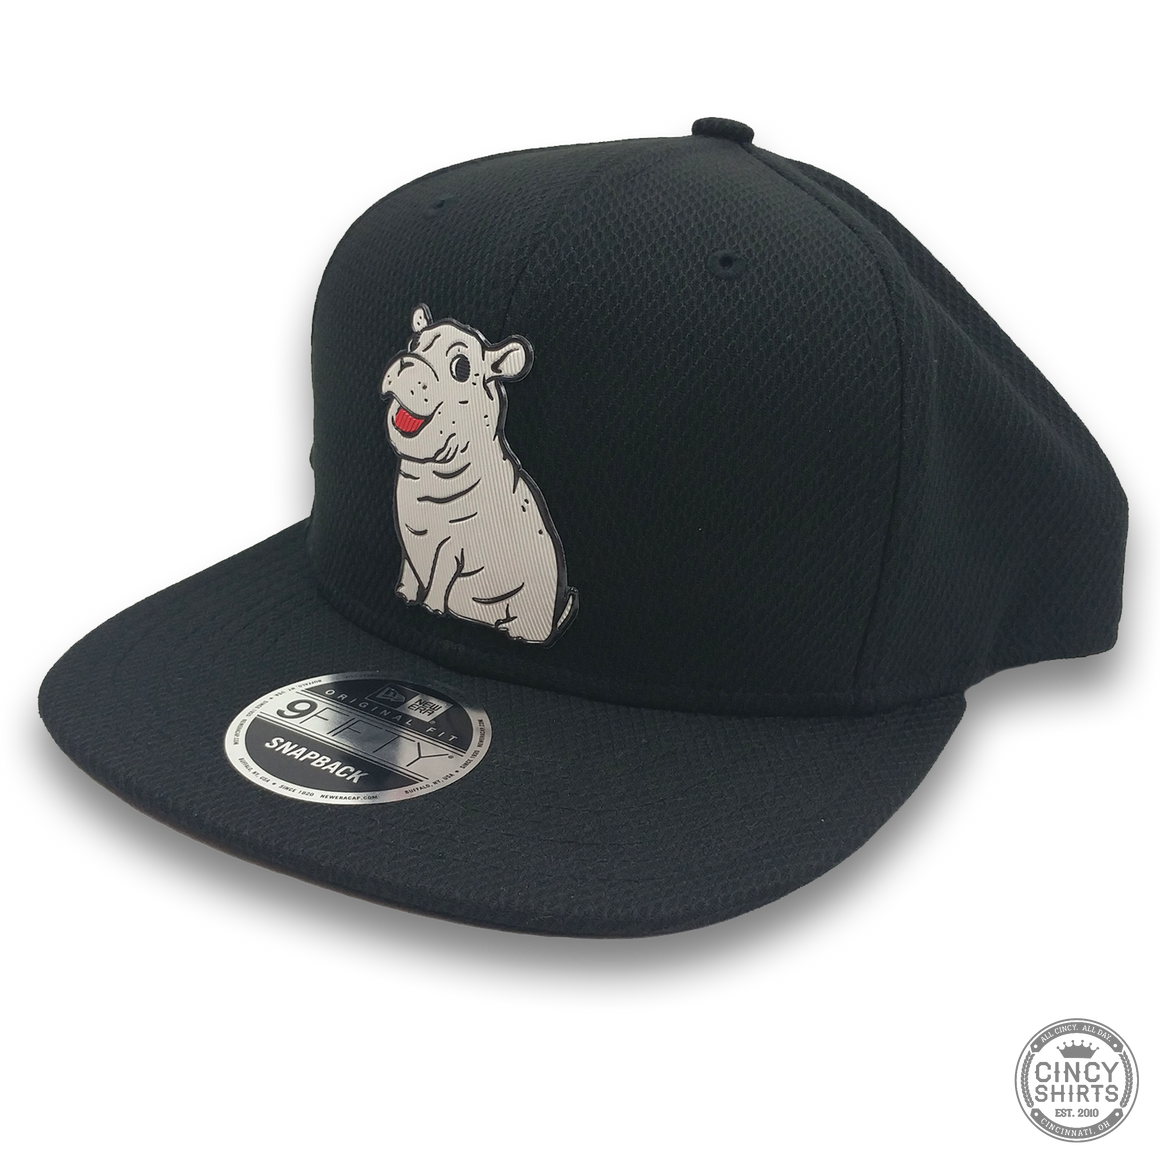 Fiona Black Snapback Hat - Cincy Shirts